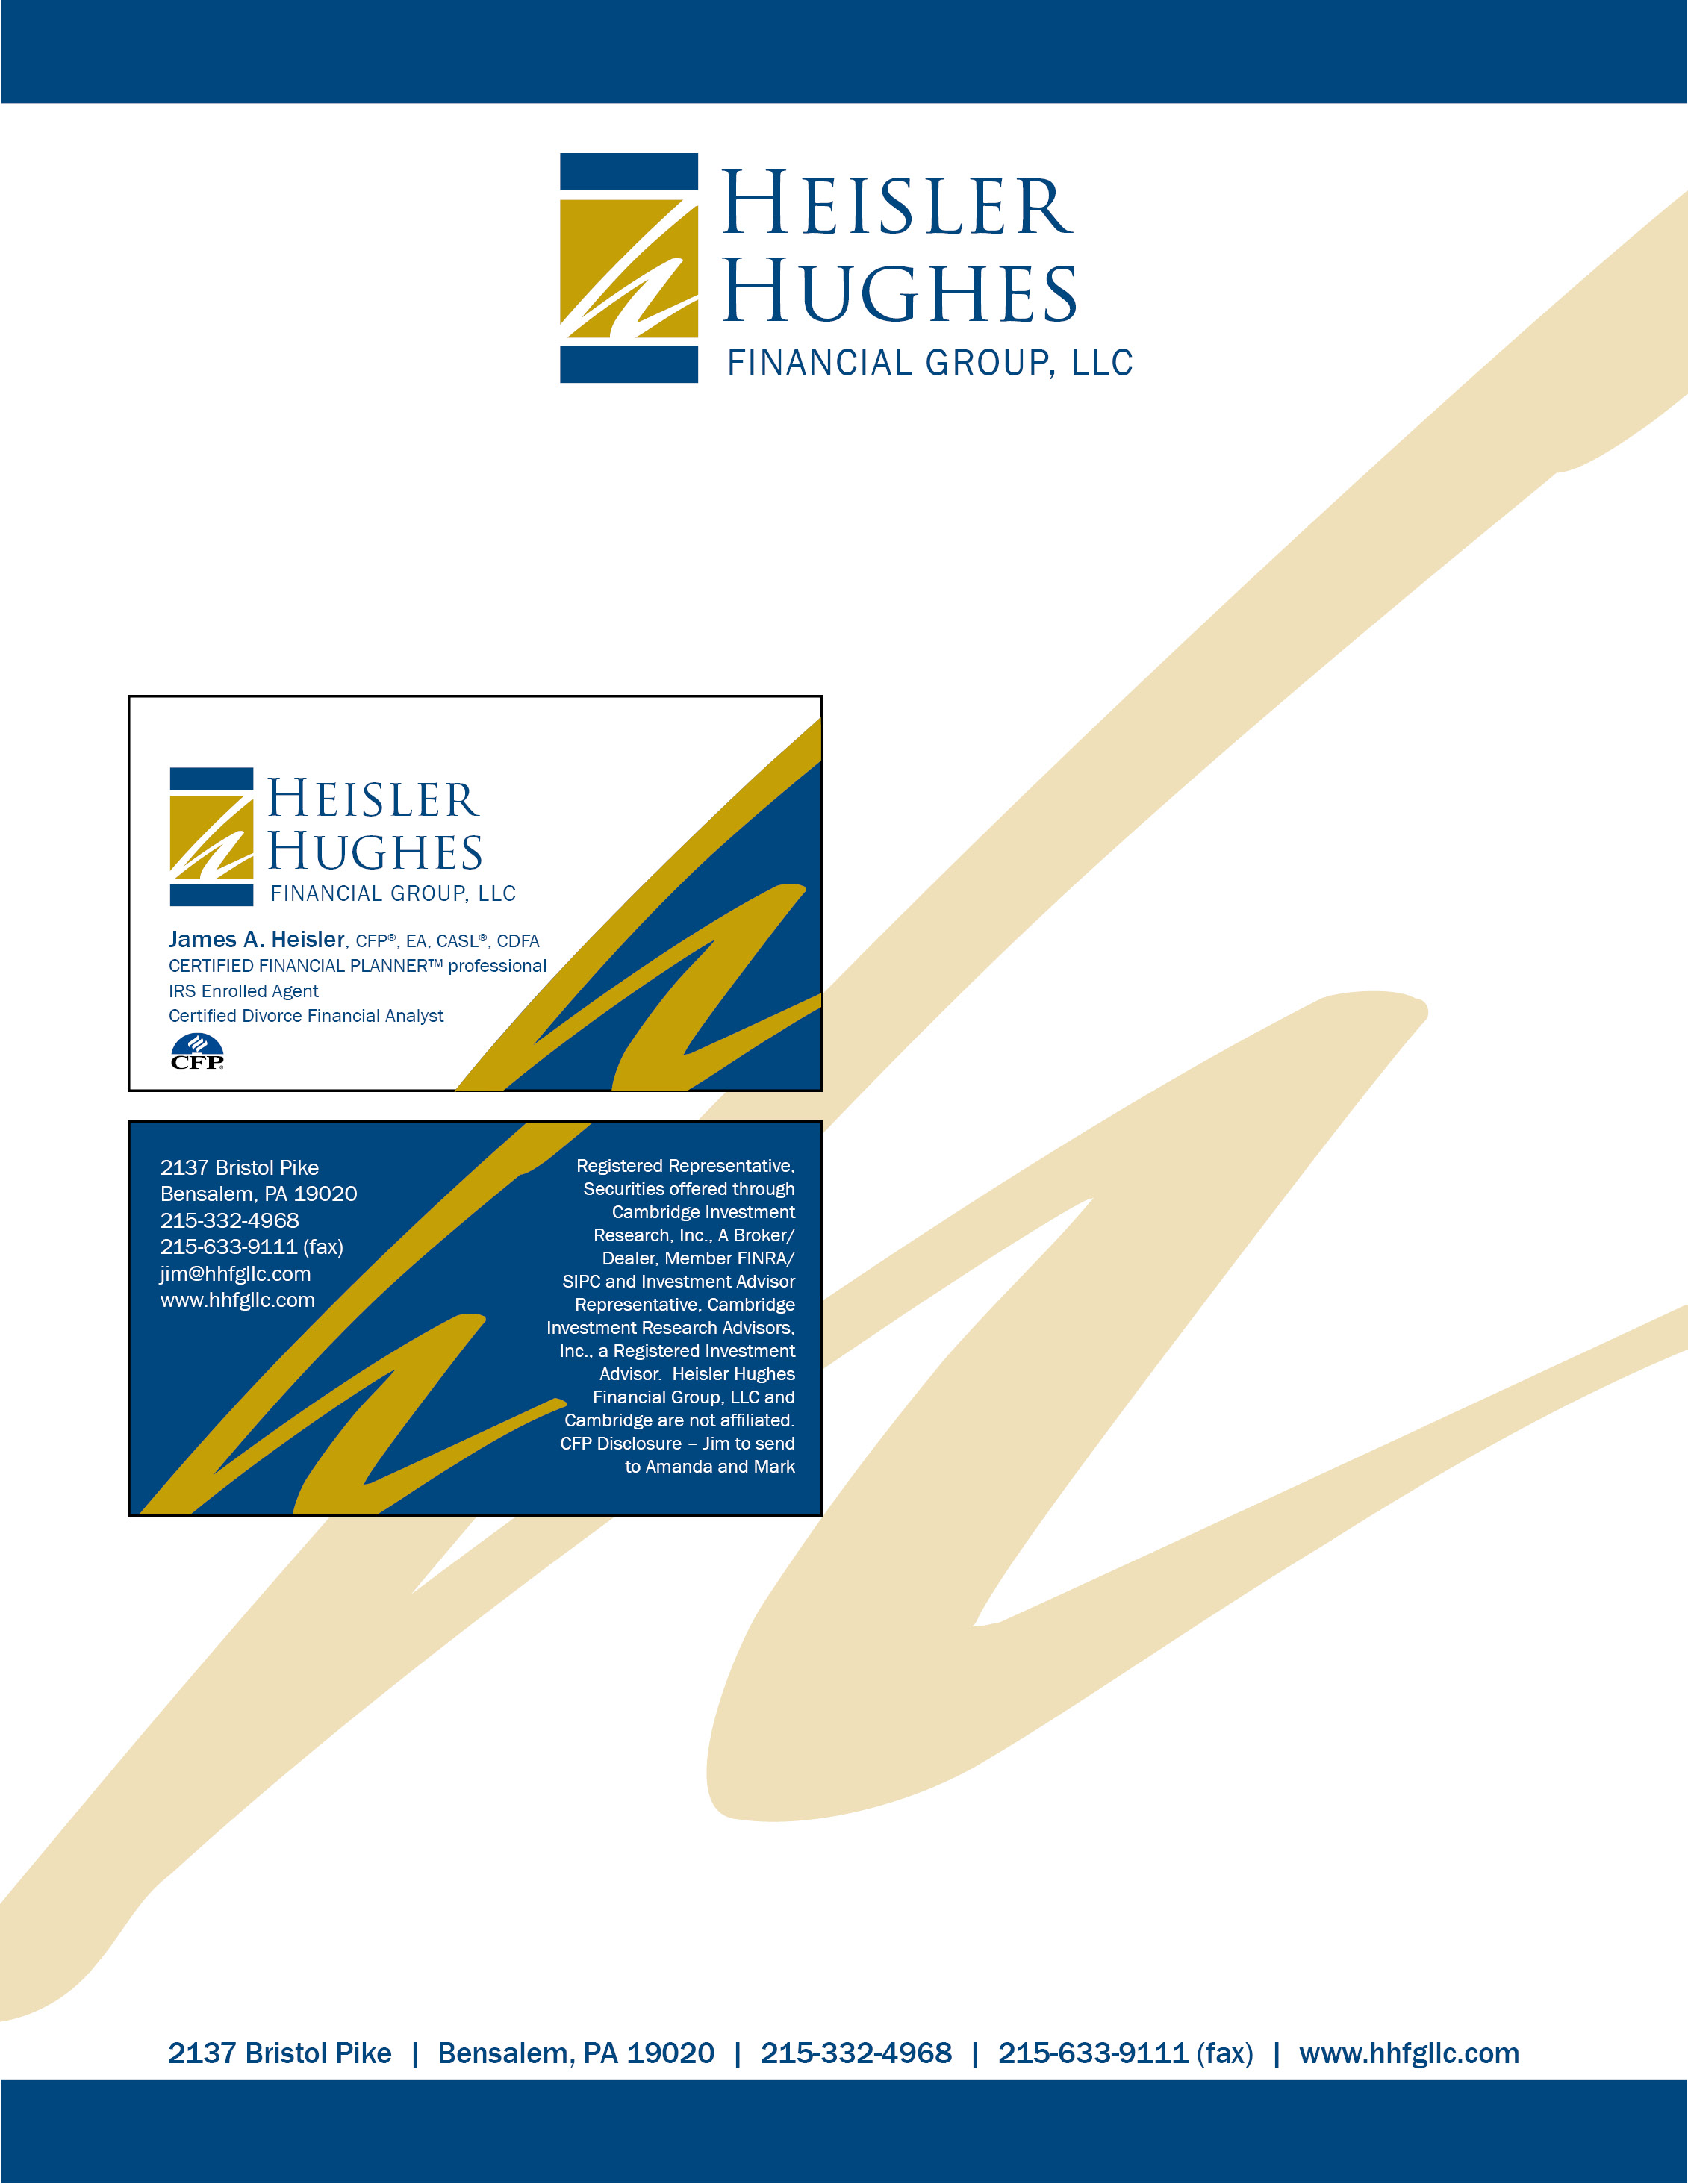 Heisler Hughes Financial Group